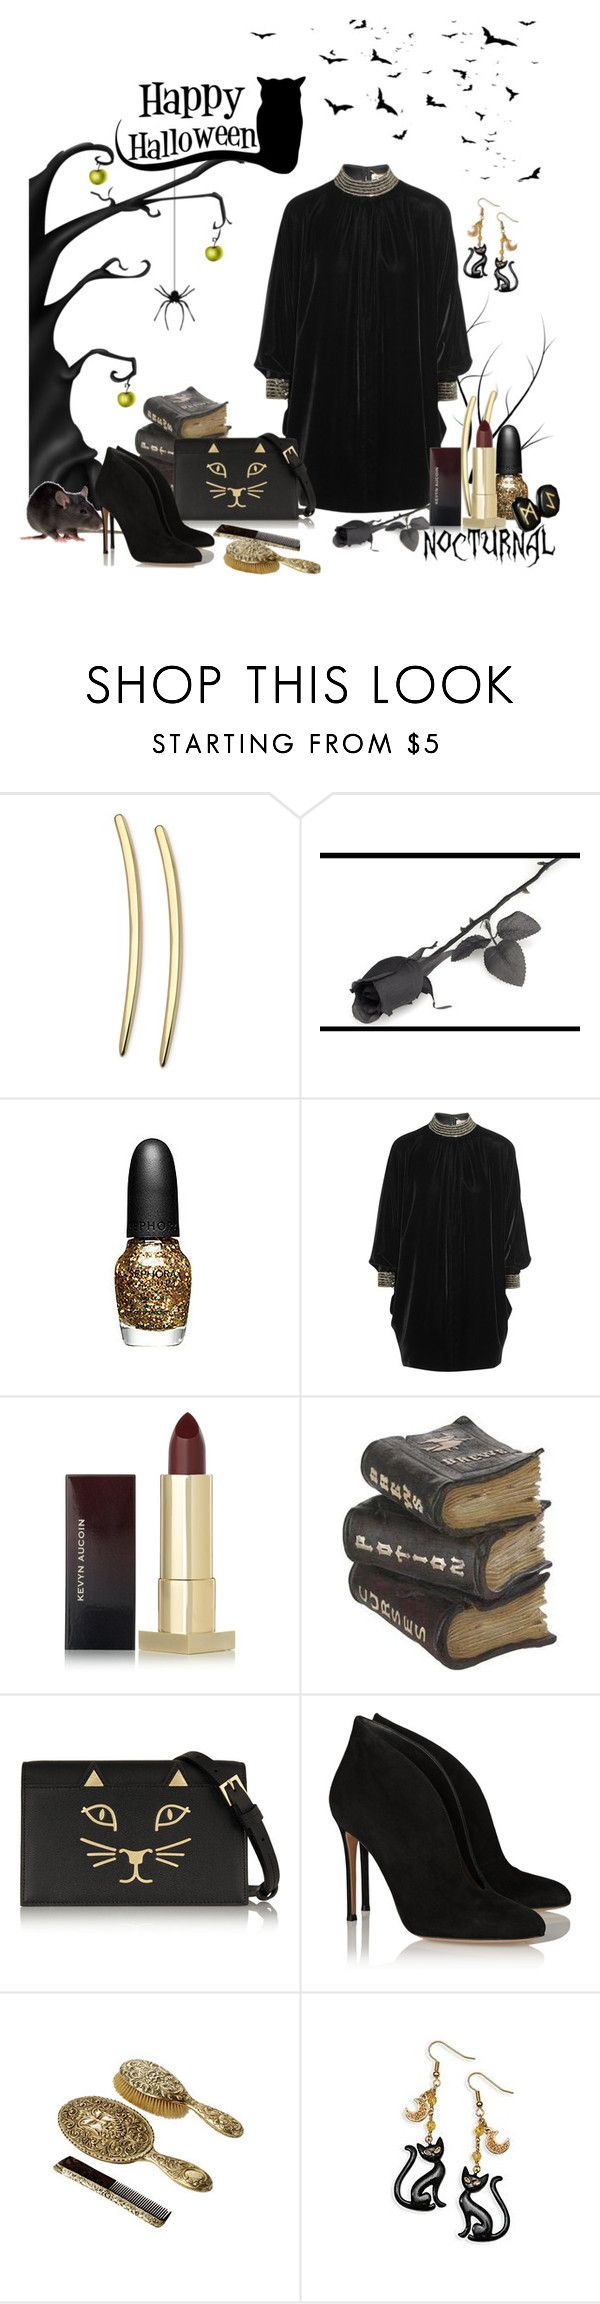 """""""Saint Laurant Beaded Velvet Mini"""" by beautyscoop ❤ liked on Polyvore featuring GUESS, INC International Concepts, Sephora Collection, Yves Saint Laurent, Kevyn Aucoin, Charlotte Olympia, Gianvito Rossi and Halloween2015"""